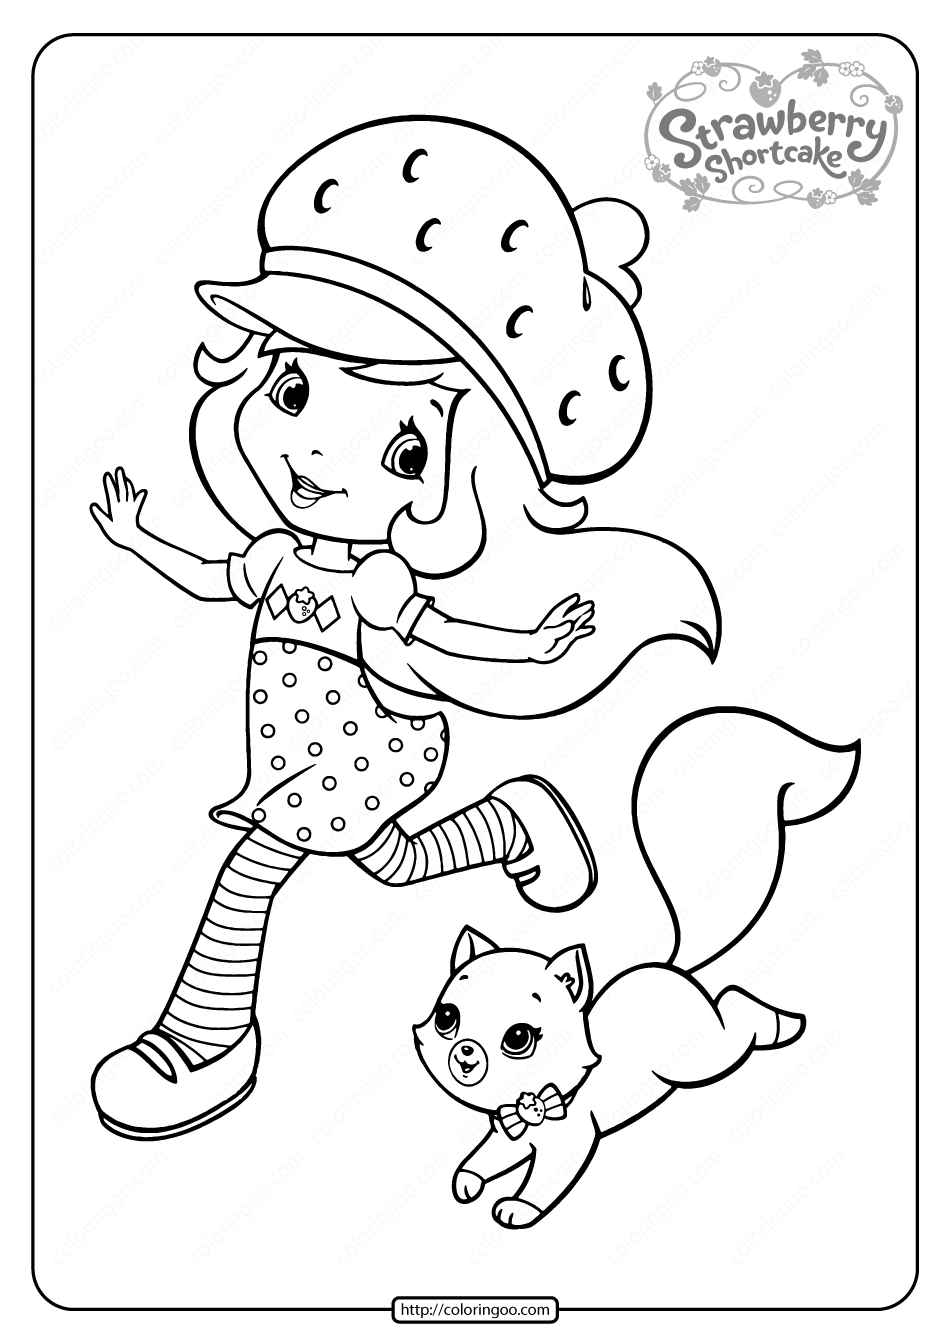 coloring pages of strawberry shortcake printable strawberry shortcake coloring pages 12 pages strawberry coloring of shortcake